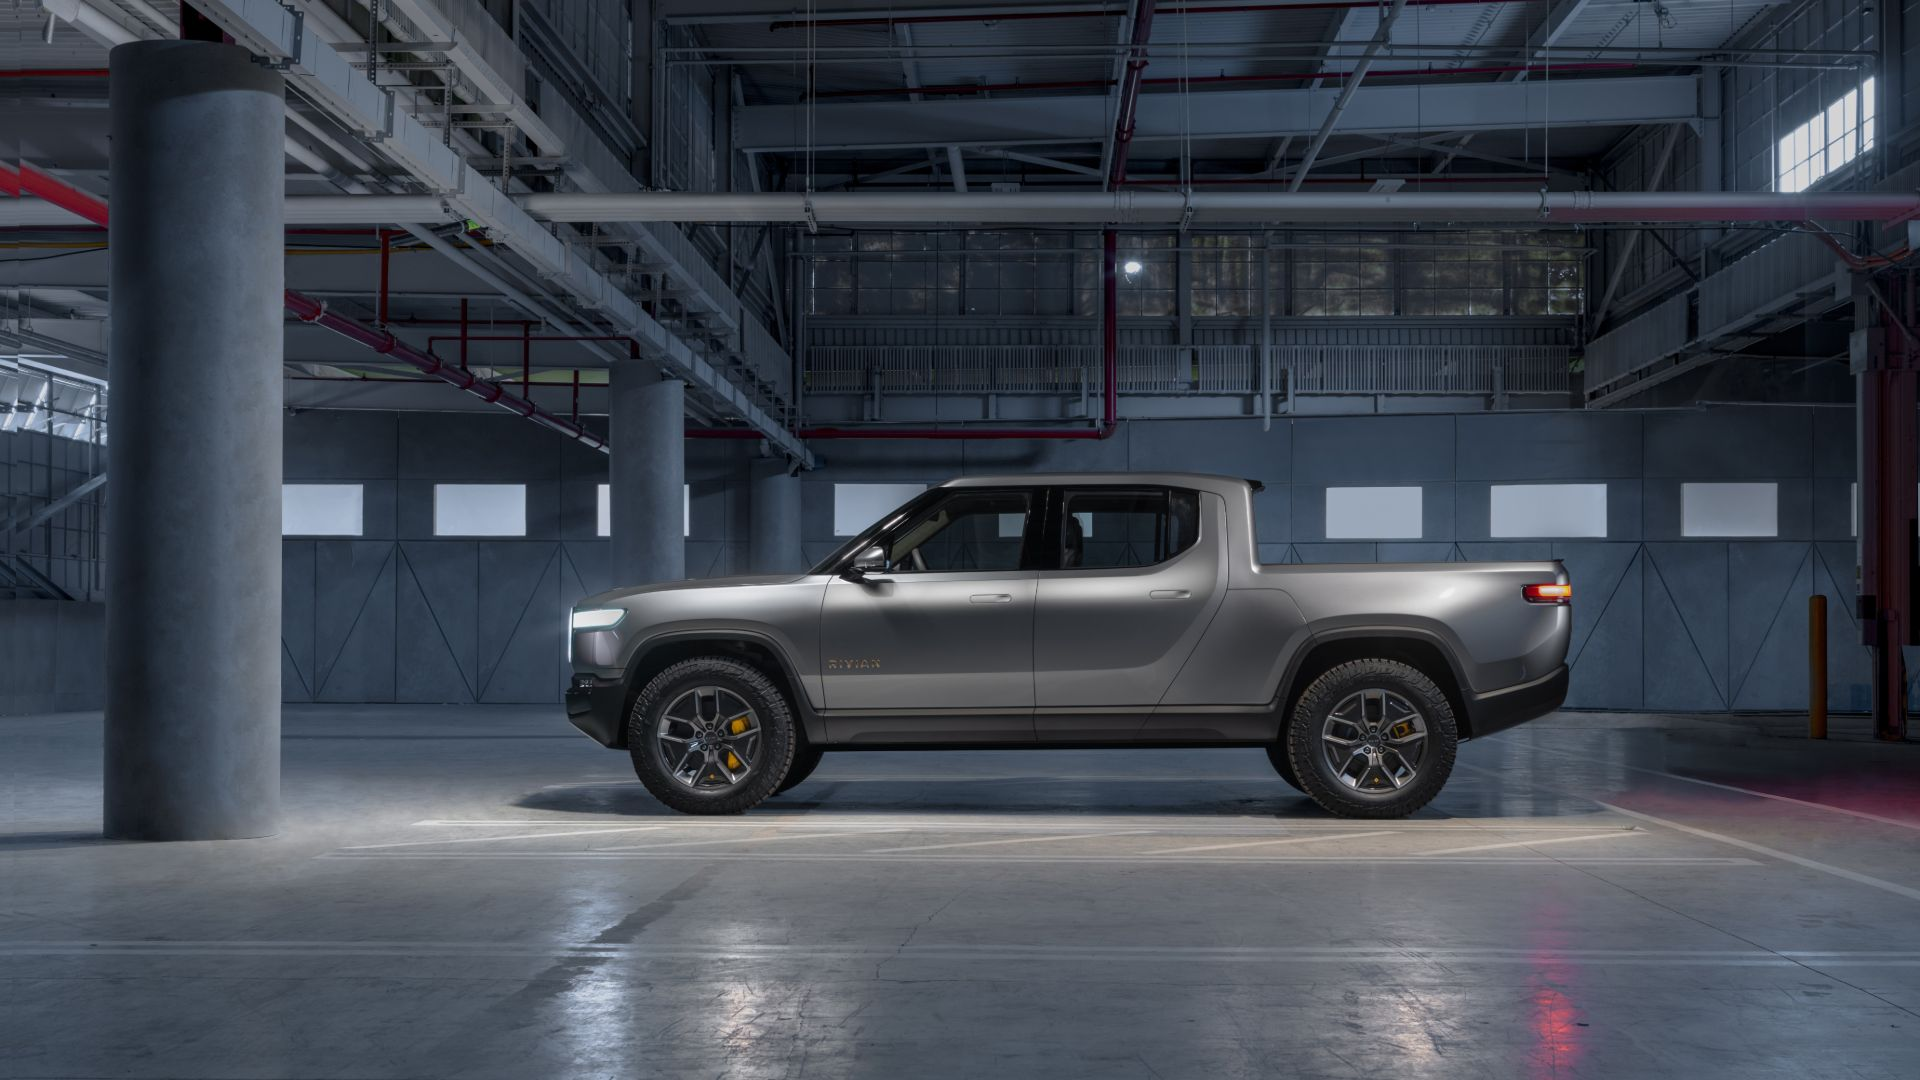 Rivian's R1T in the factory where it will be built.